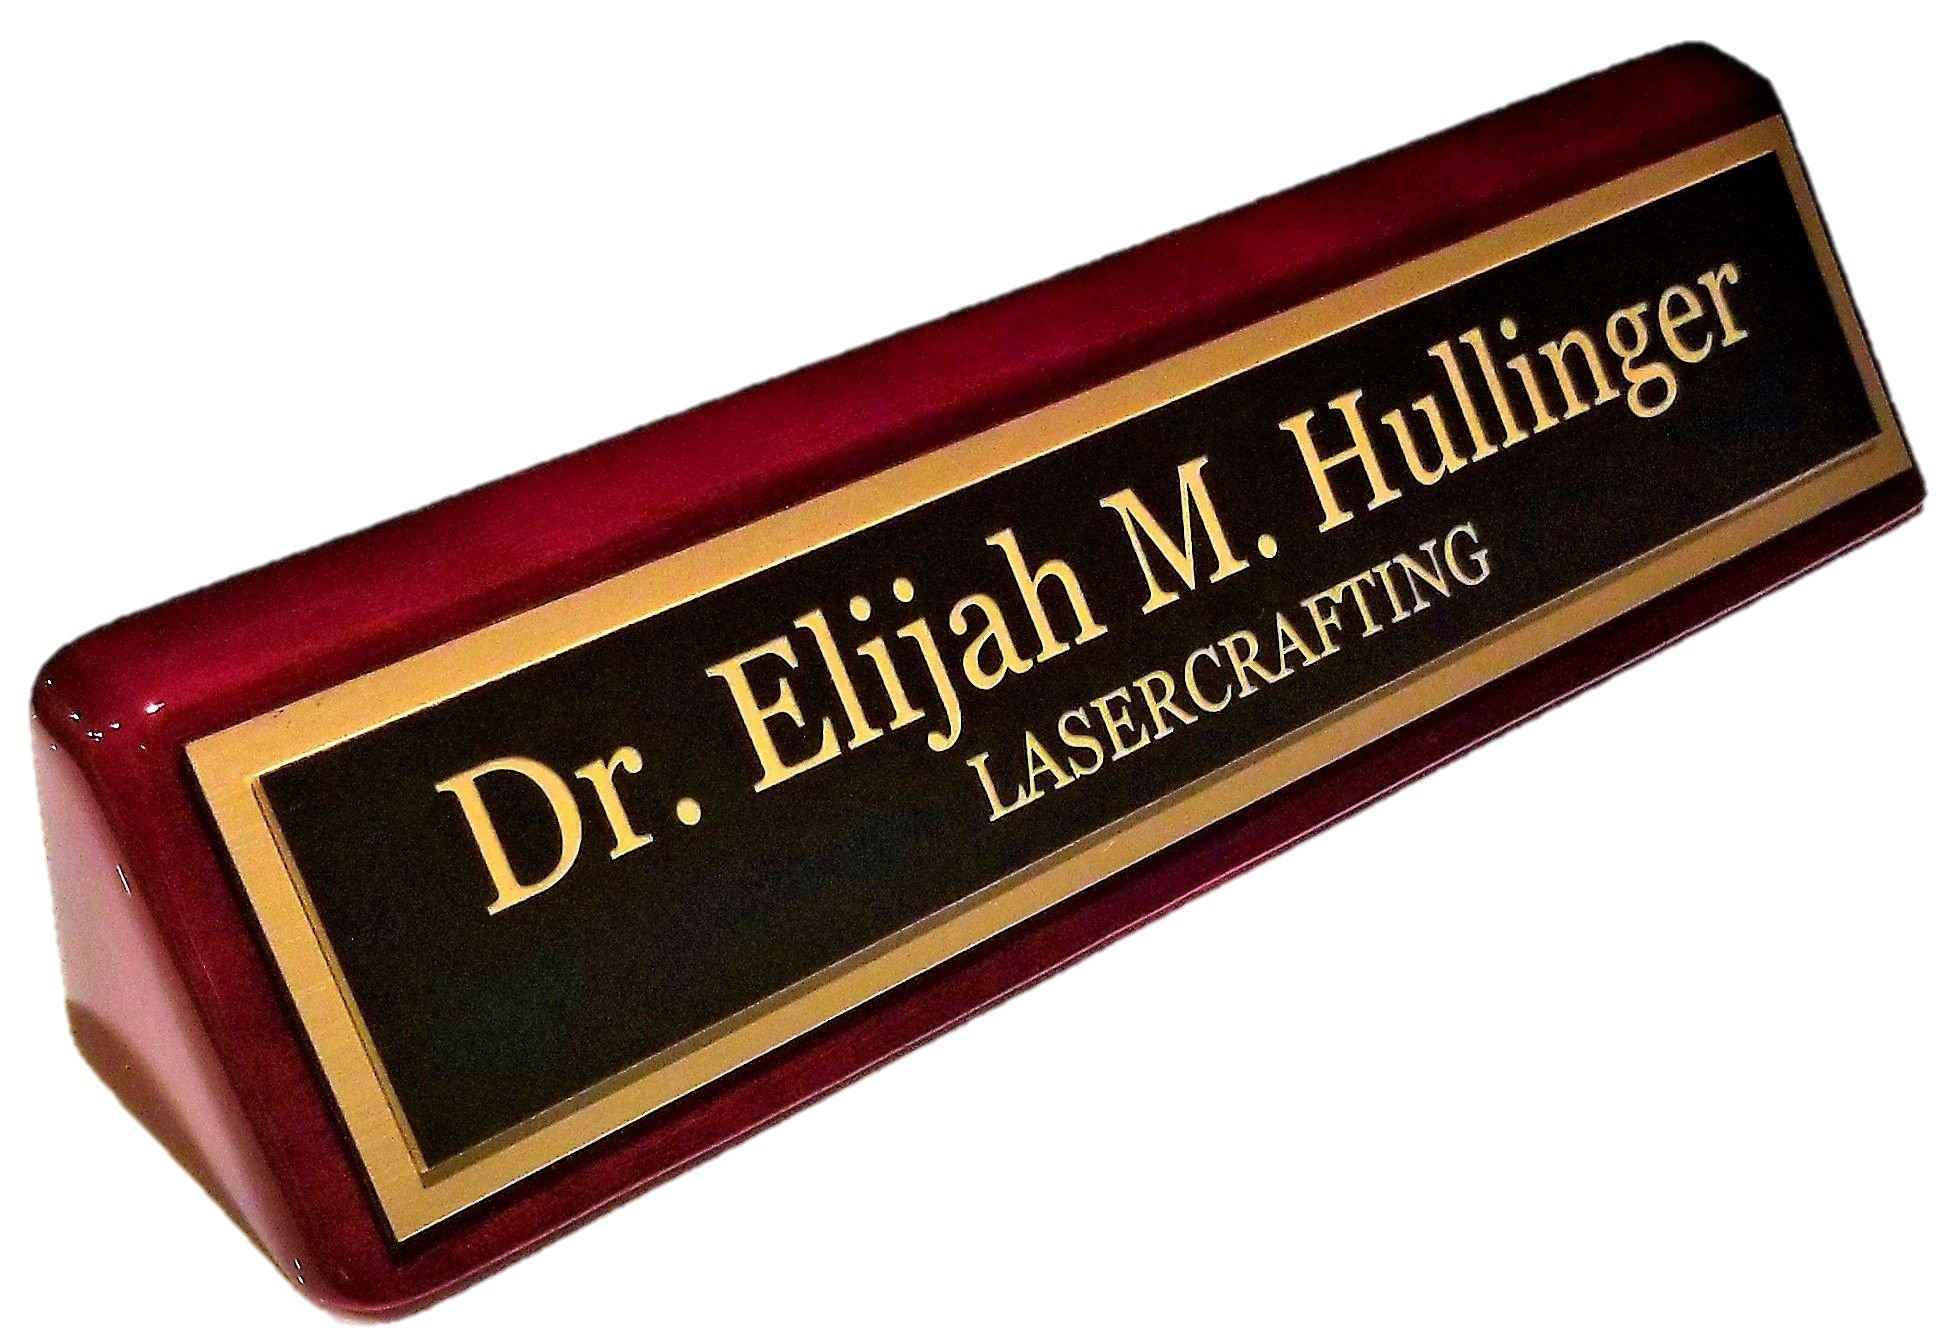 Executive Name Plate Rosewood Piano Finish Gold Plate 2'' x10'' - Customize